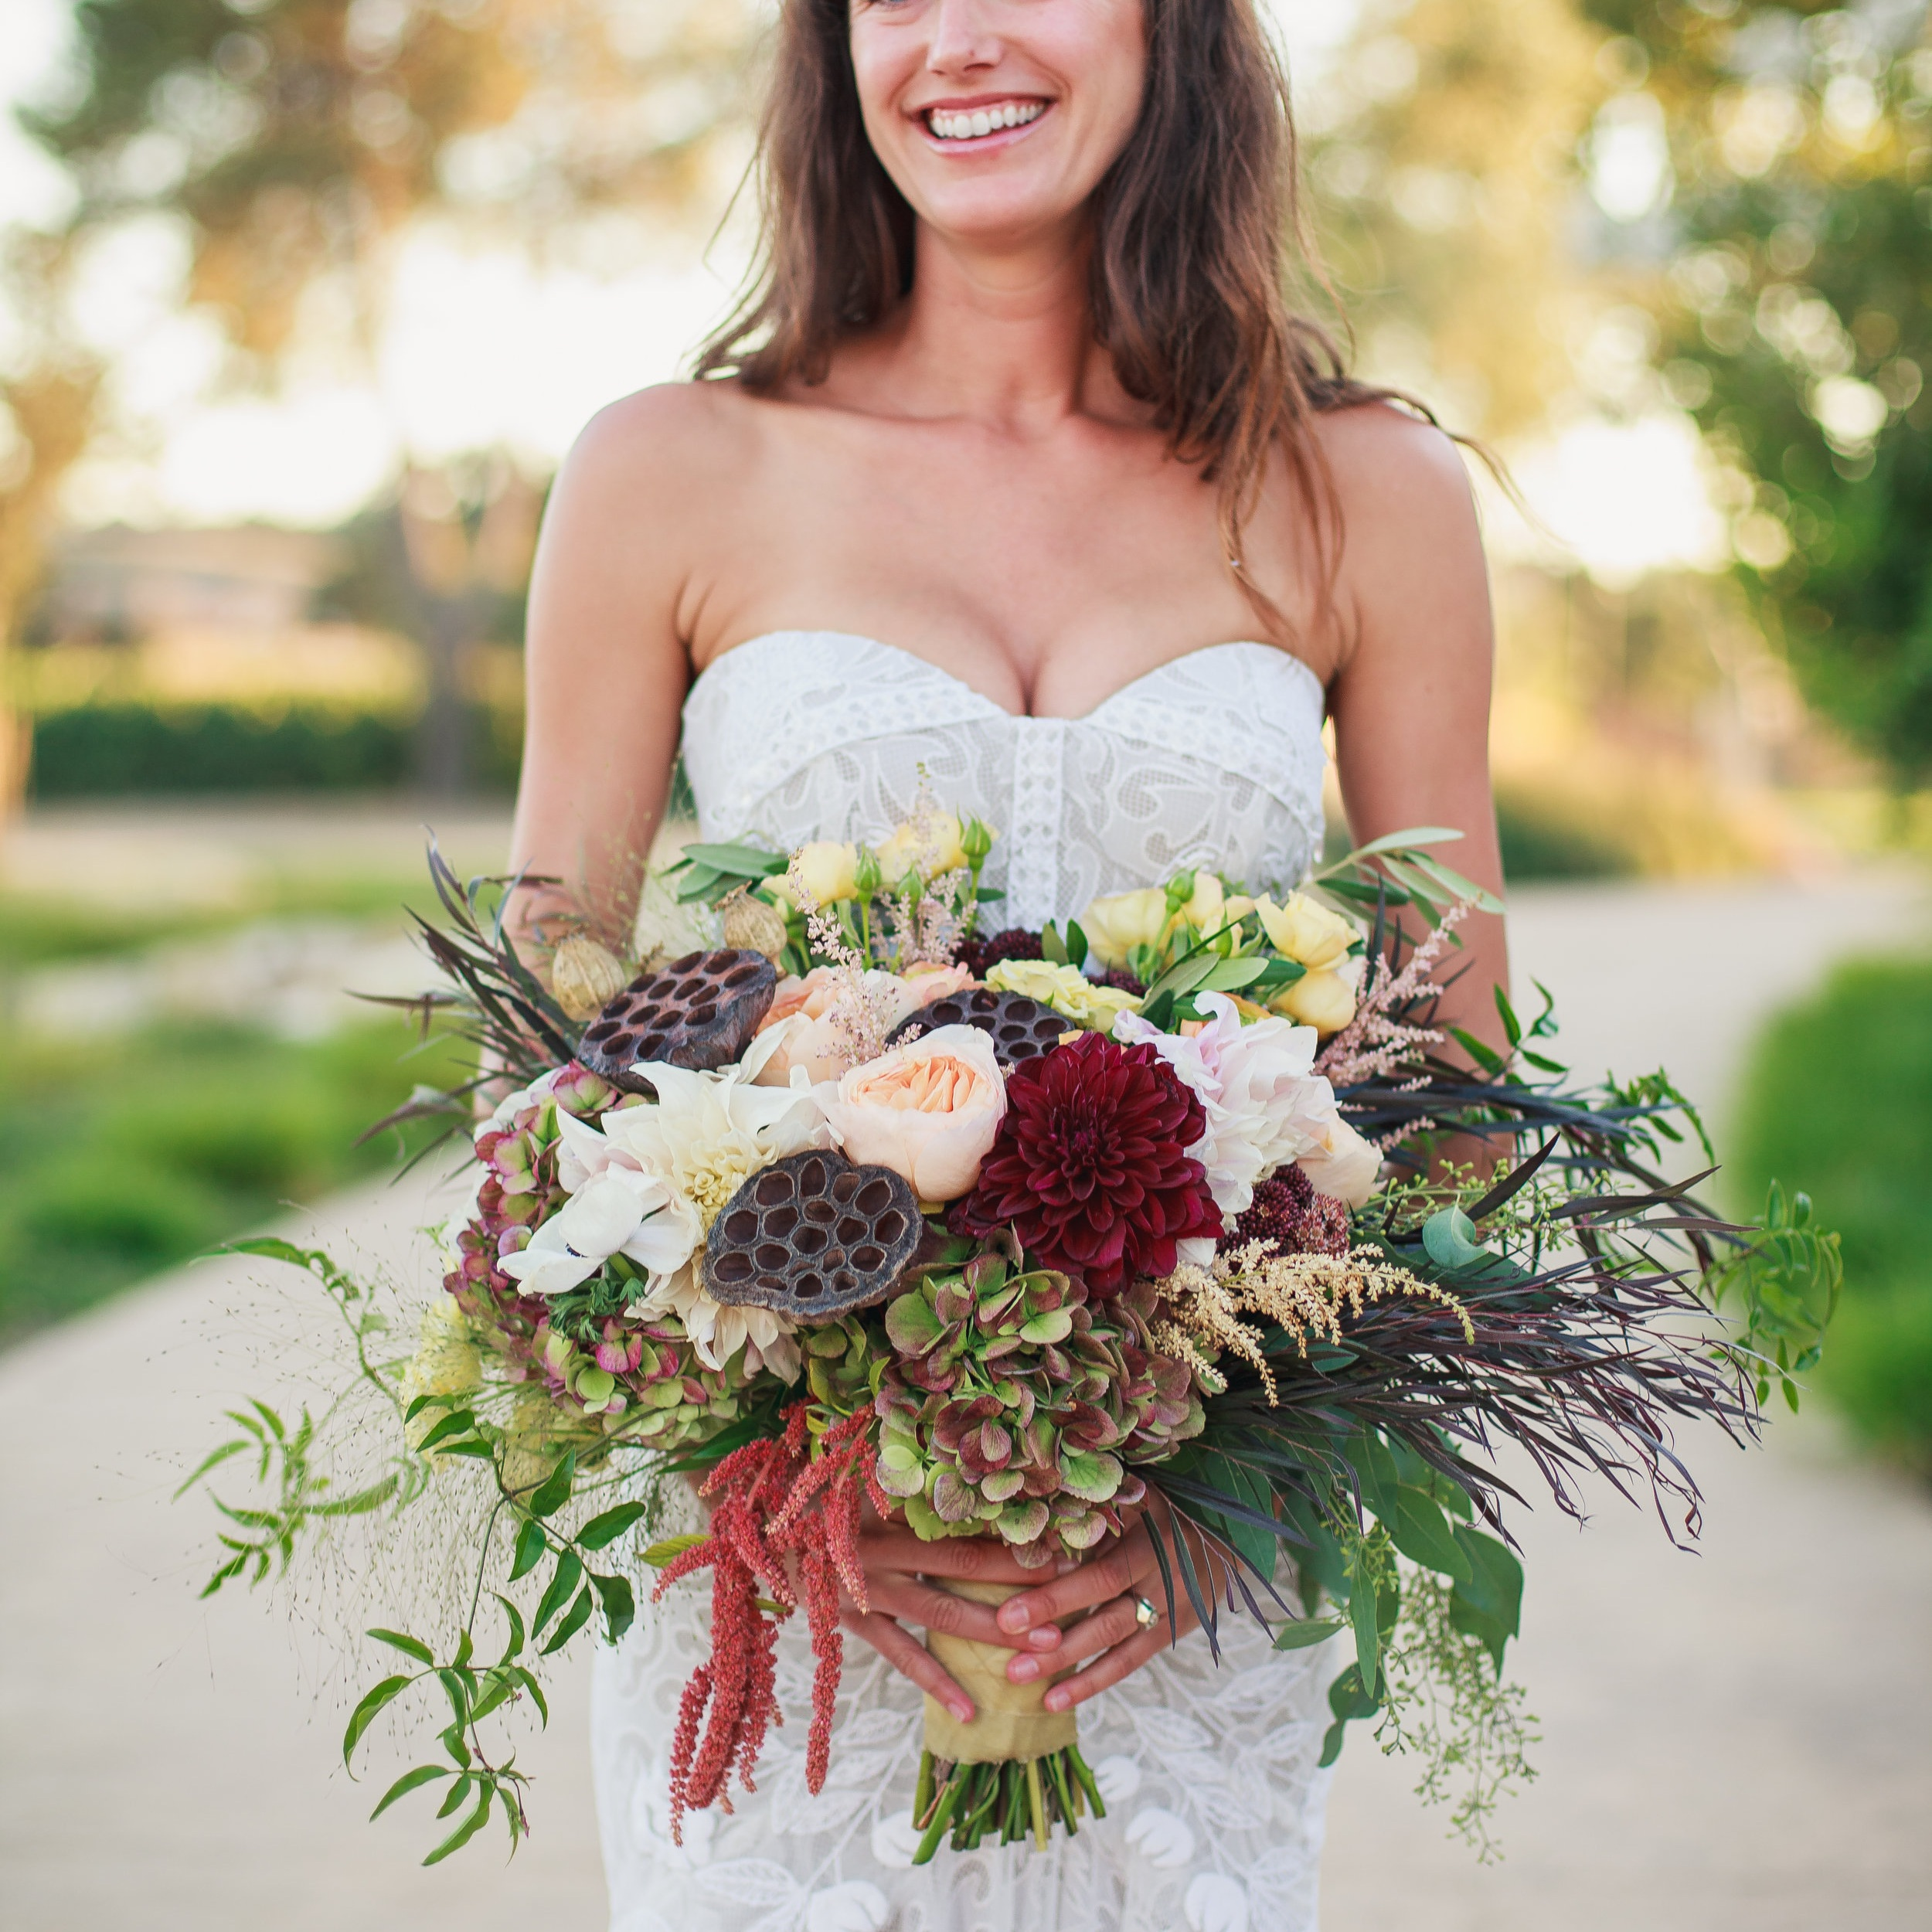 Weddings - We provide all your floral needs for your big day. Whether simple or elaborate, let us help make your day special.